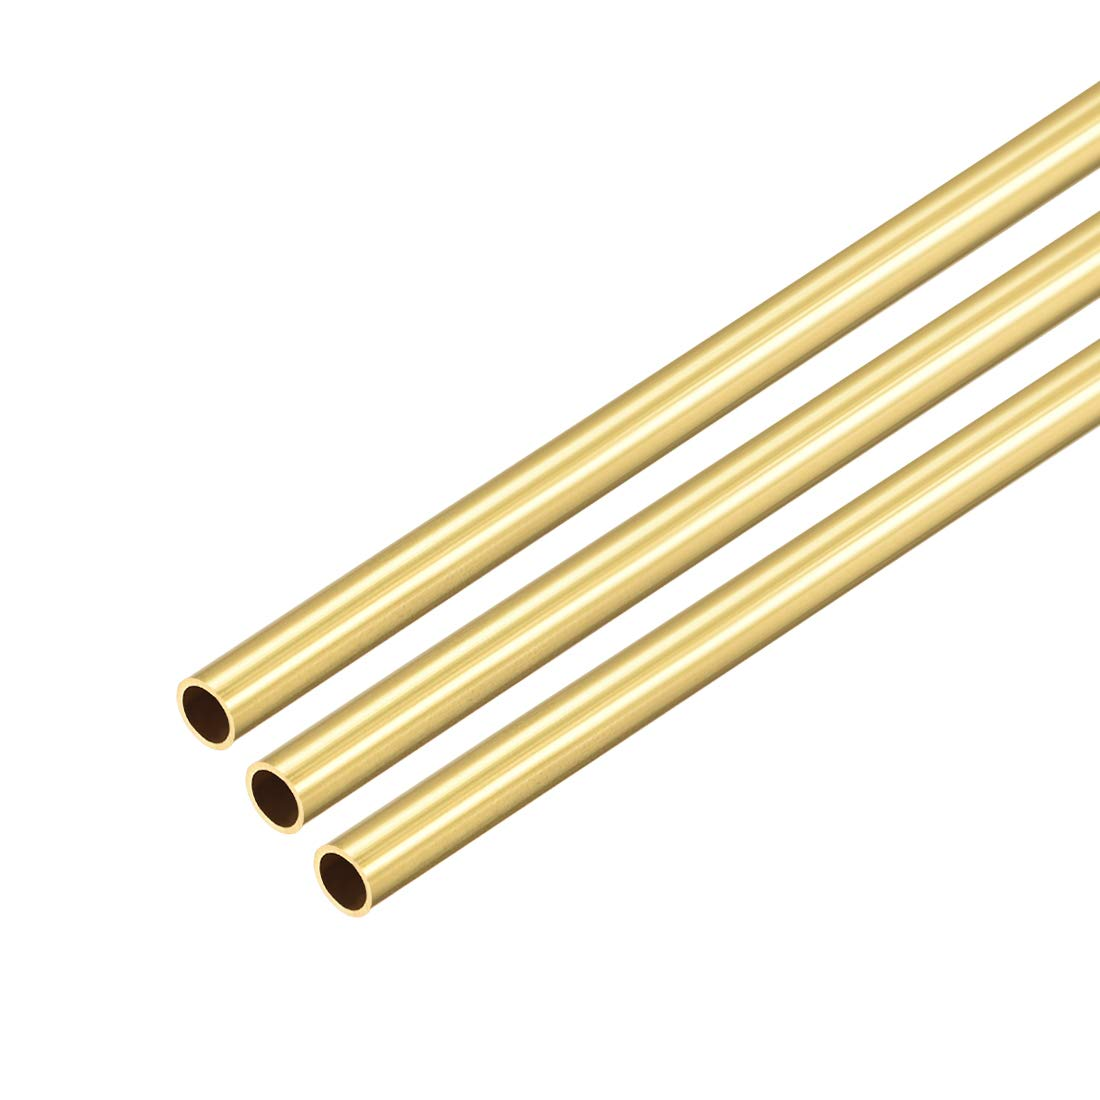 uxcell Brass Round Tube, 300mm Length 5mm OD 0.5mm Wall Thickness, Seamless Straight Pipe Tubing 3 Pcs